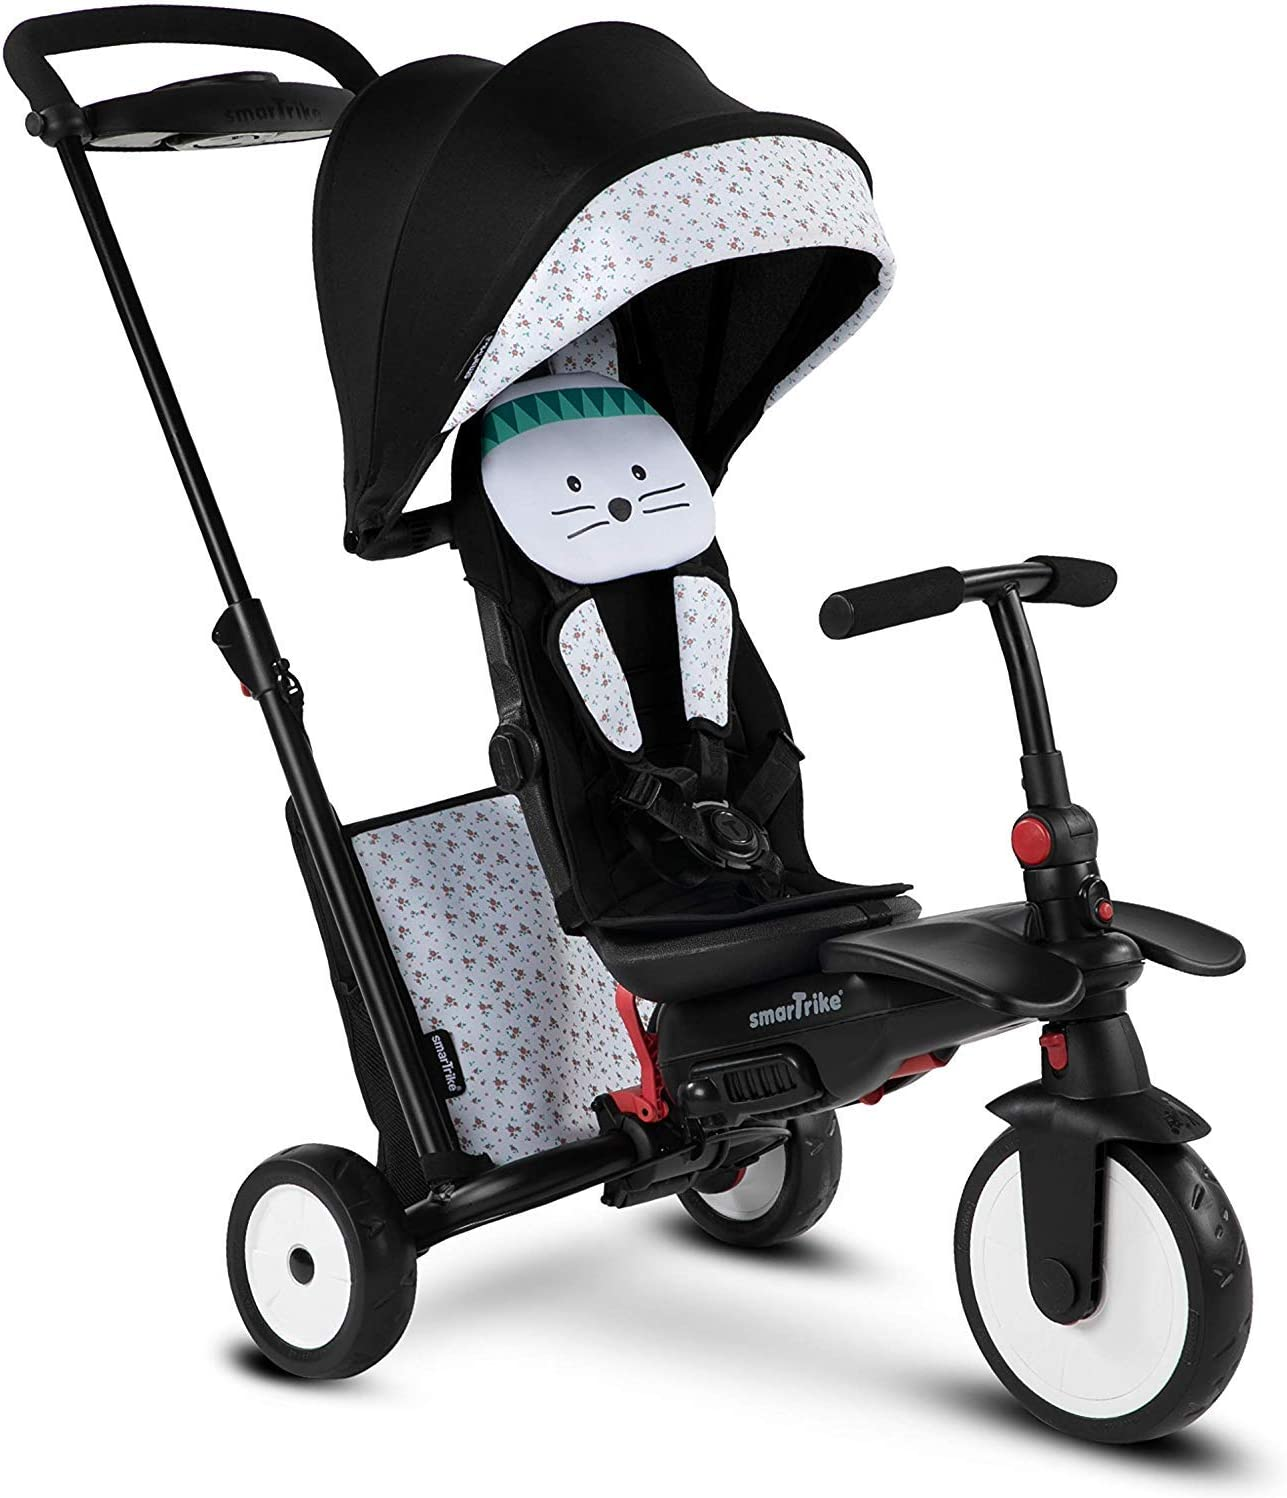 7-in-1 Multi-Stage Trike smarTrike STR5 Folding Toddler Tricycle for 1,2,3 Year Old with Stroller Certification